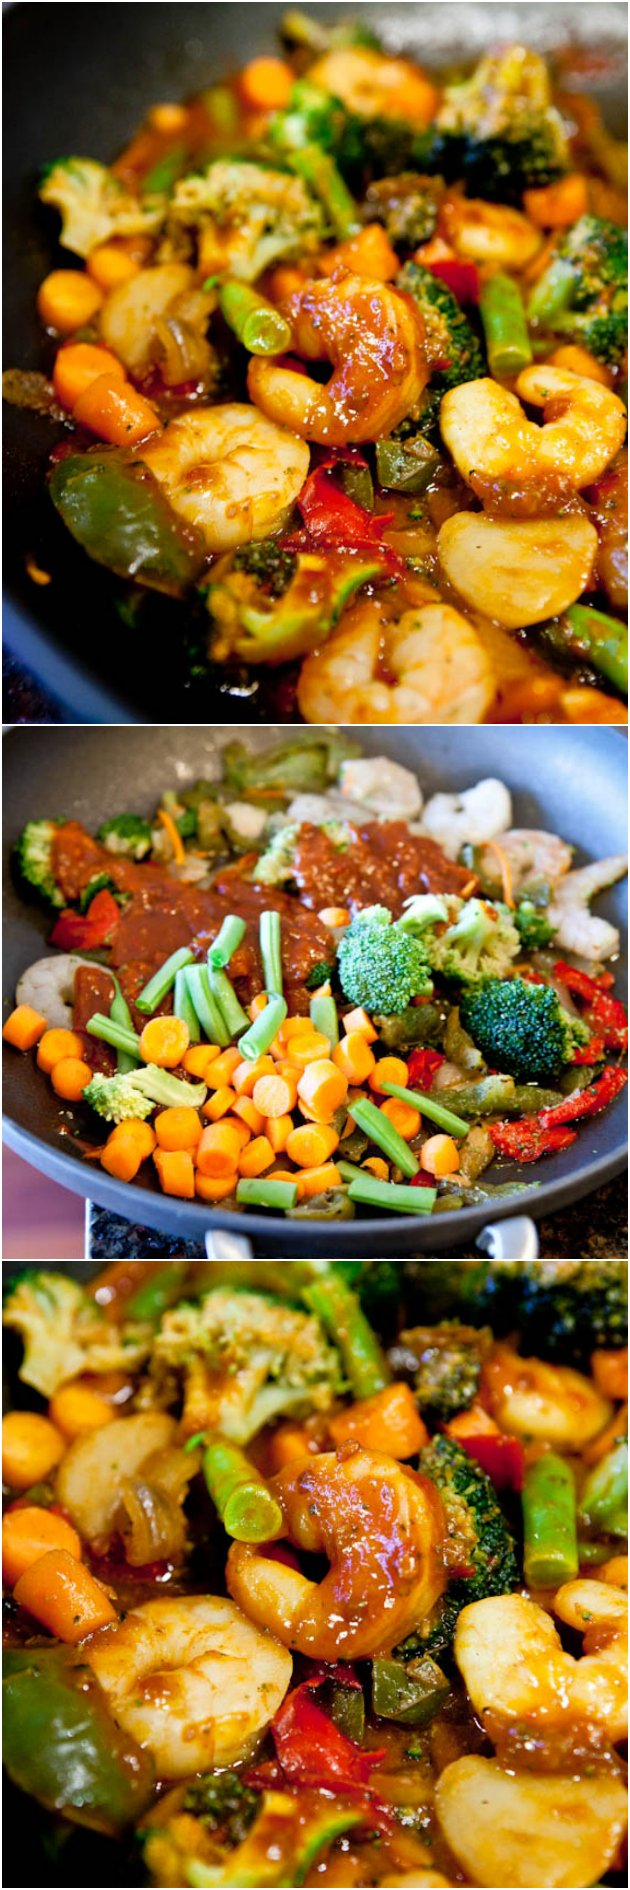 Szechuan Shrimp Stir Fry with Fried Rice (GF) - Packed with flavor, healthy & so easy to make! Who needs takeout when you can DIY in 15 minutes!